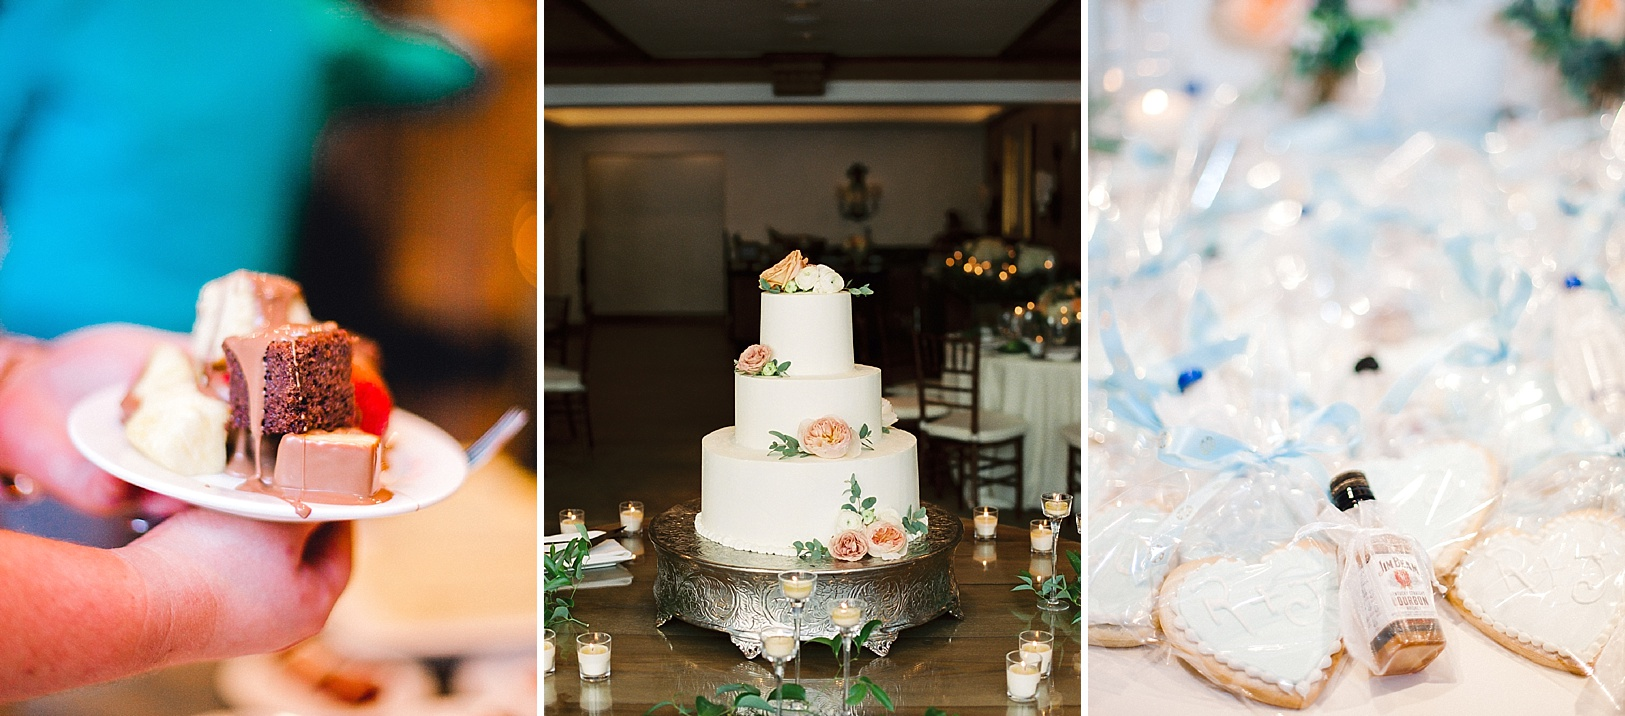 Wedding desserts and favors from The Sonnenalp in Vail, Colorado